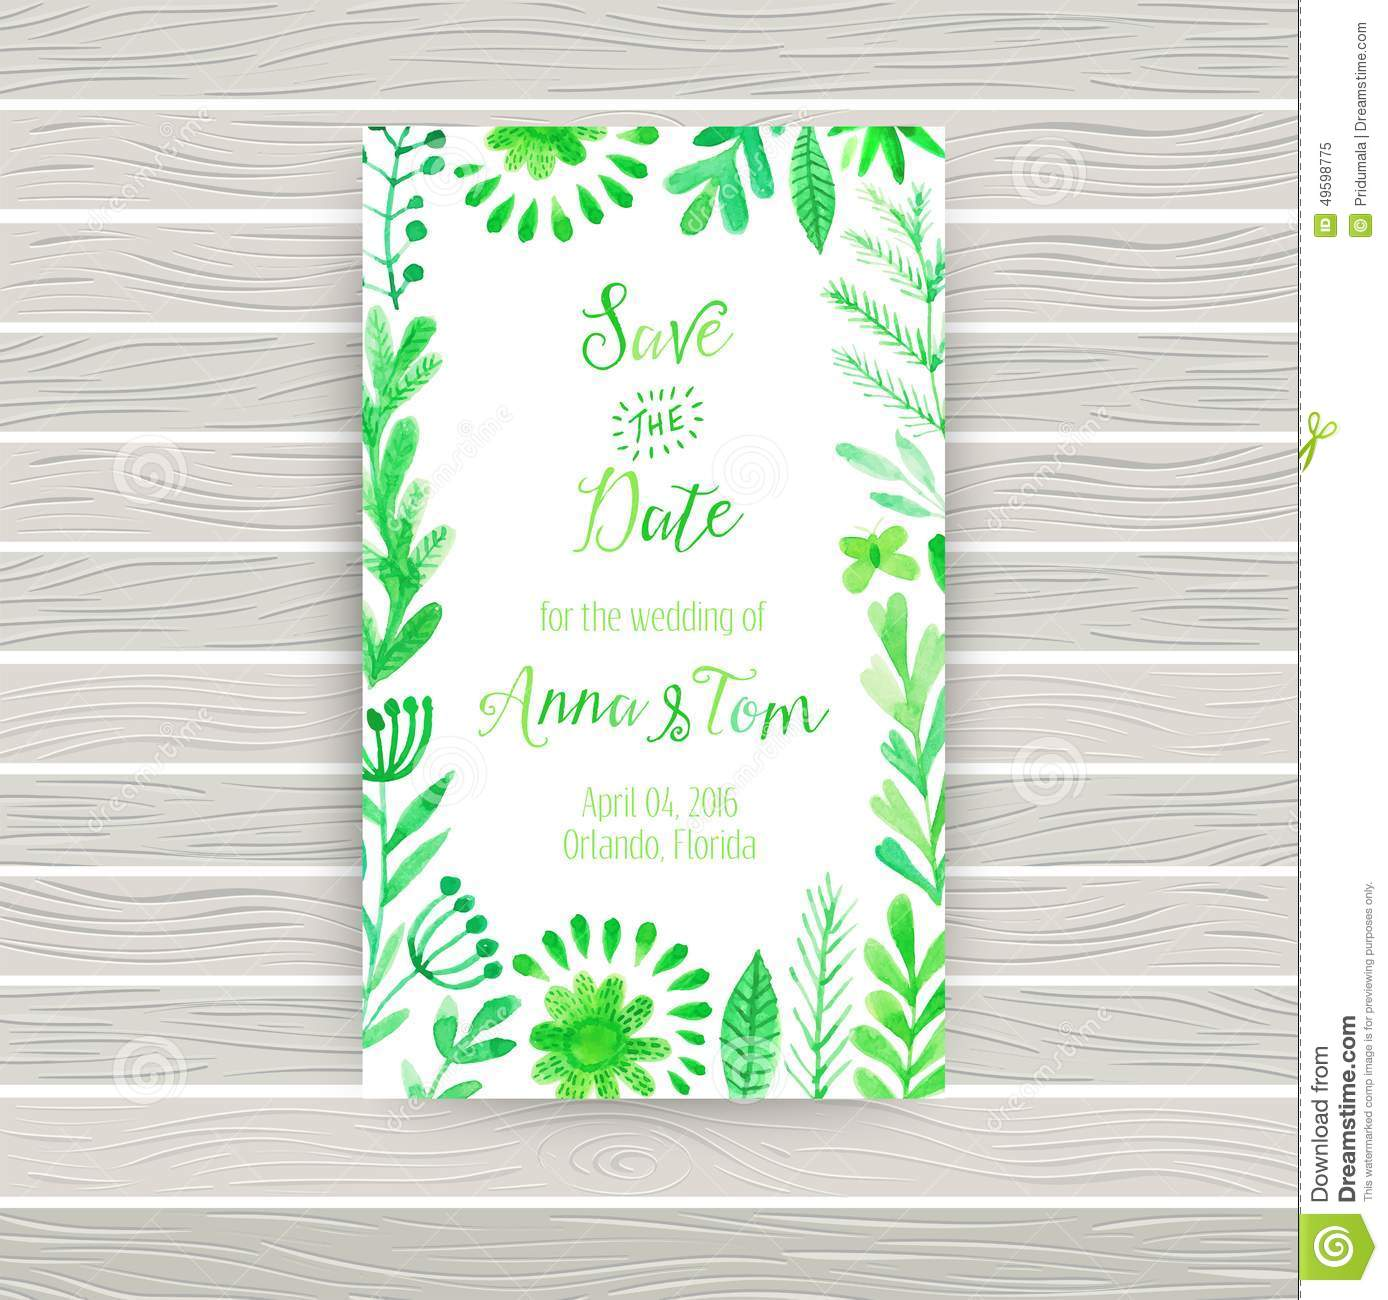 Vector watercolor invitation card with flowers and plants floral download vector watercolor invitation card with flowers and plants floral design original floral background m4hsunfo